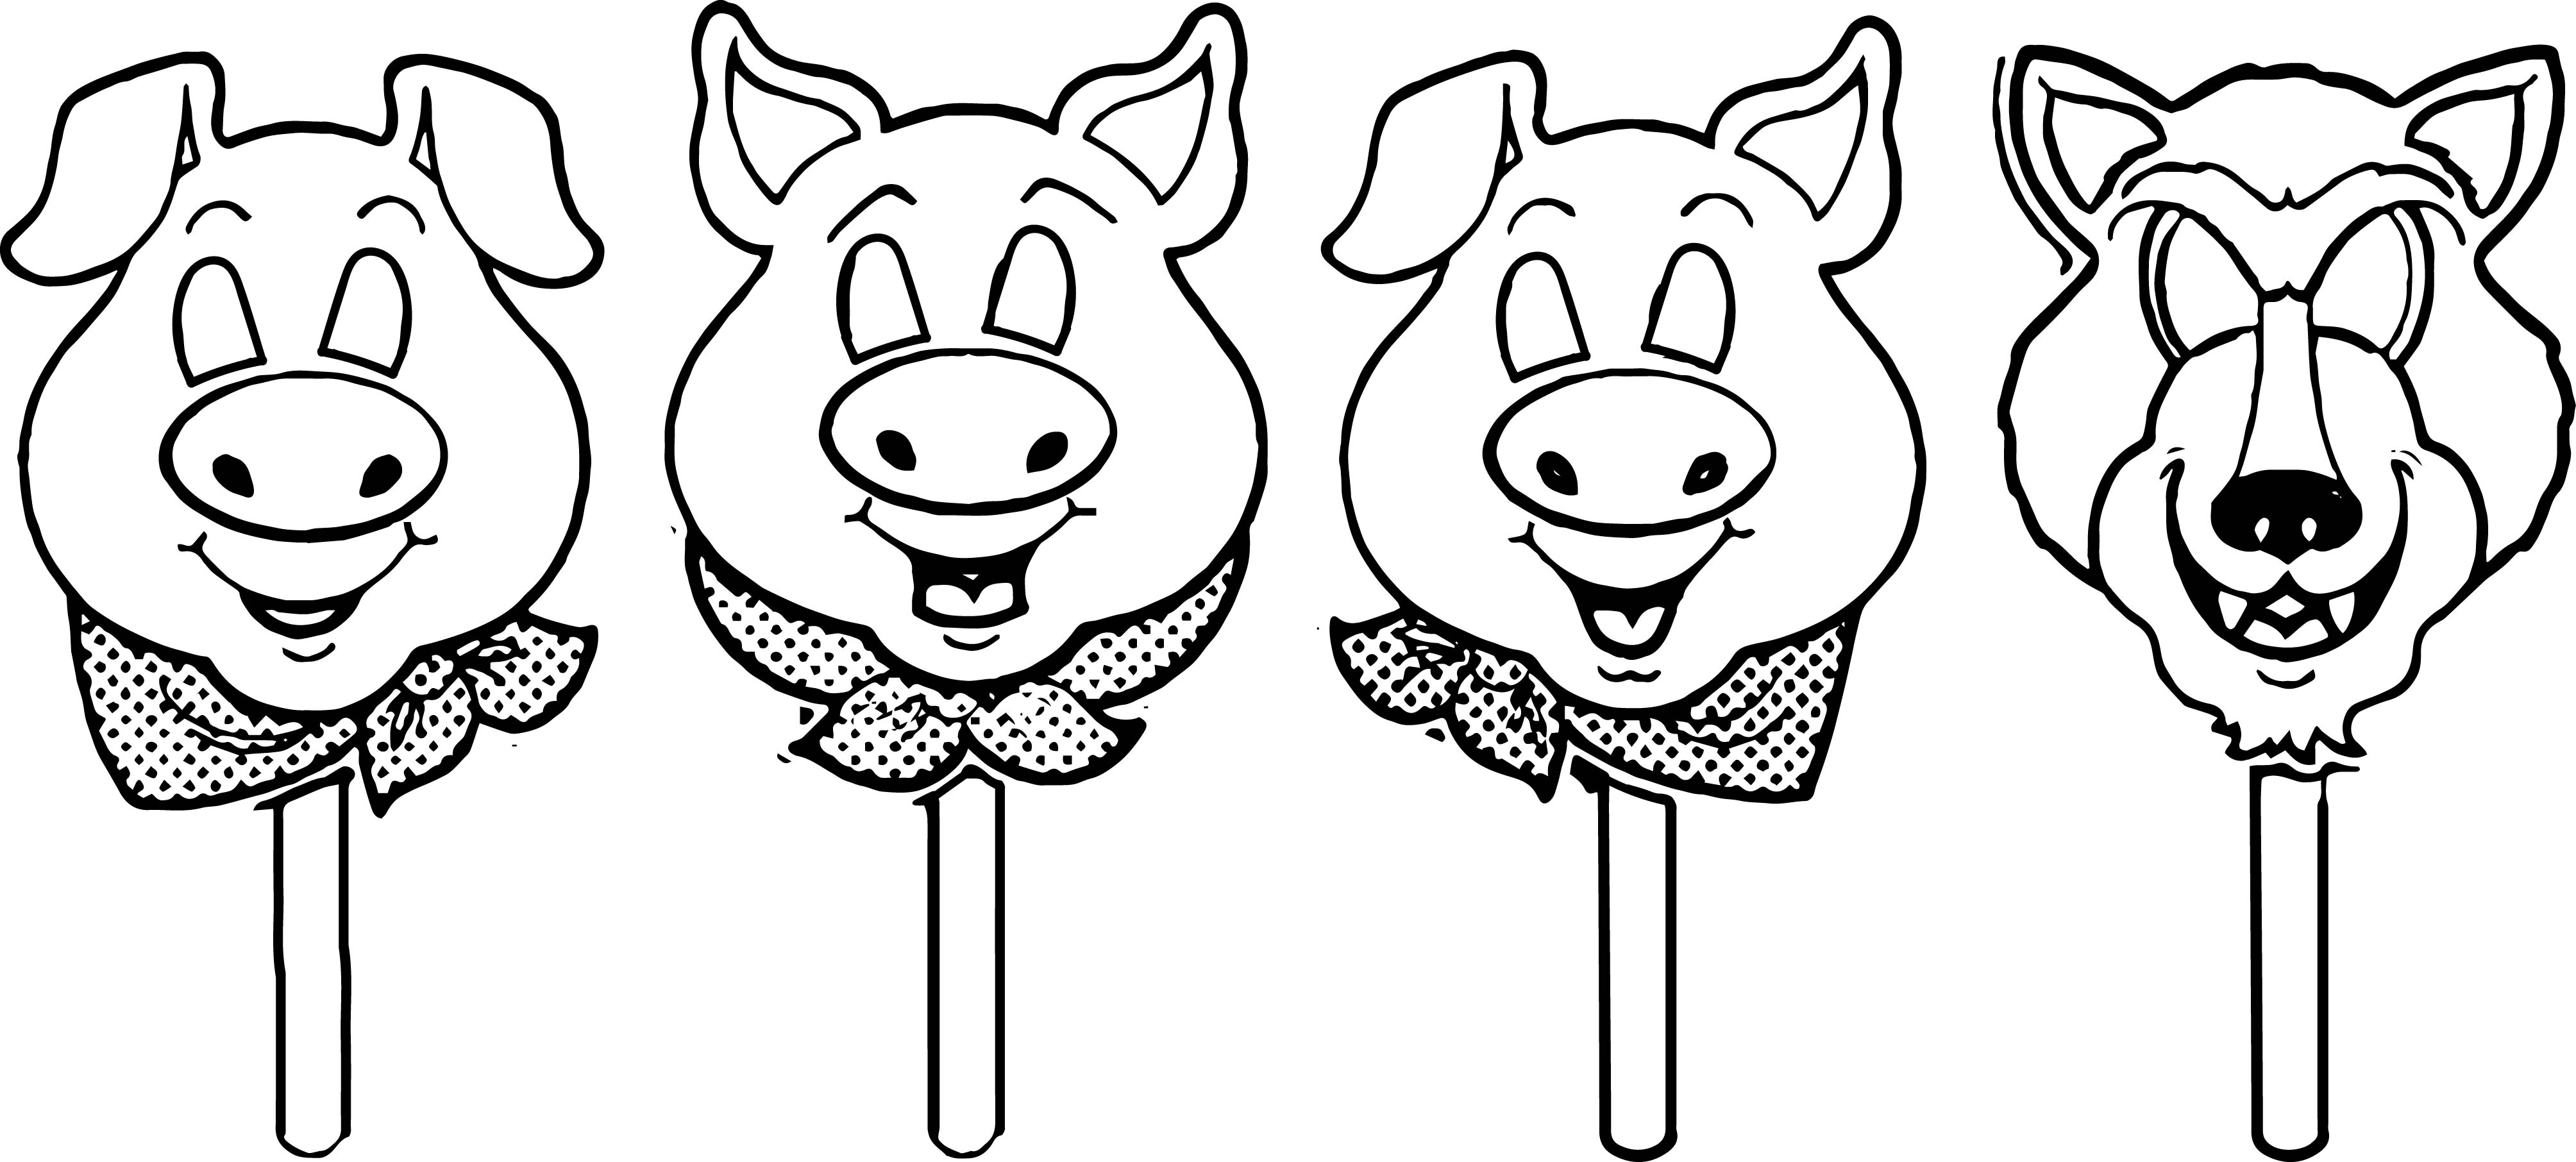 3 little pigs mask template coloring page for The three little pigs puppet templates